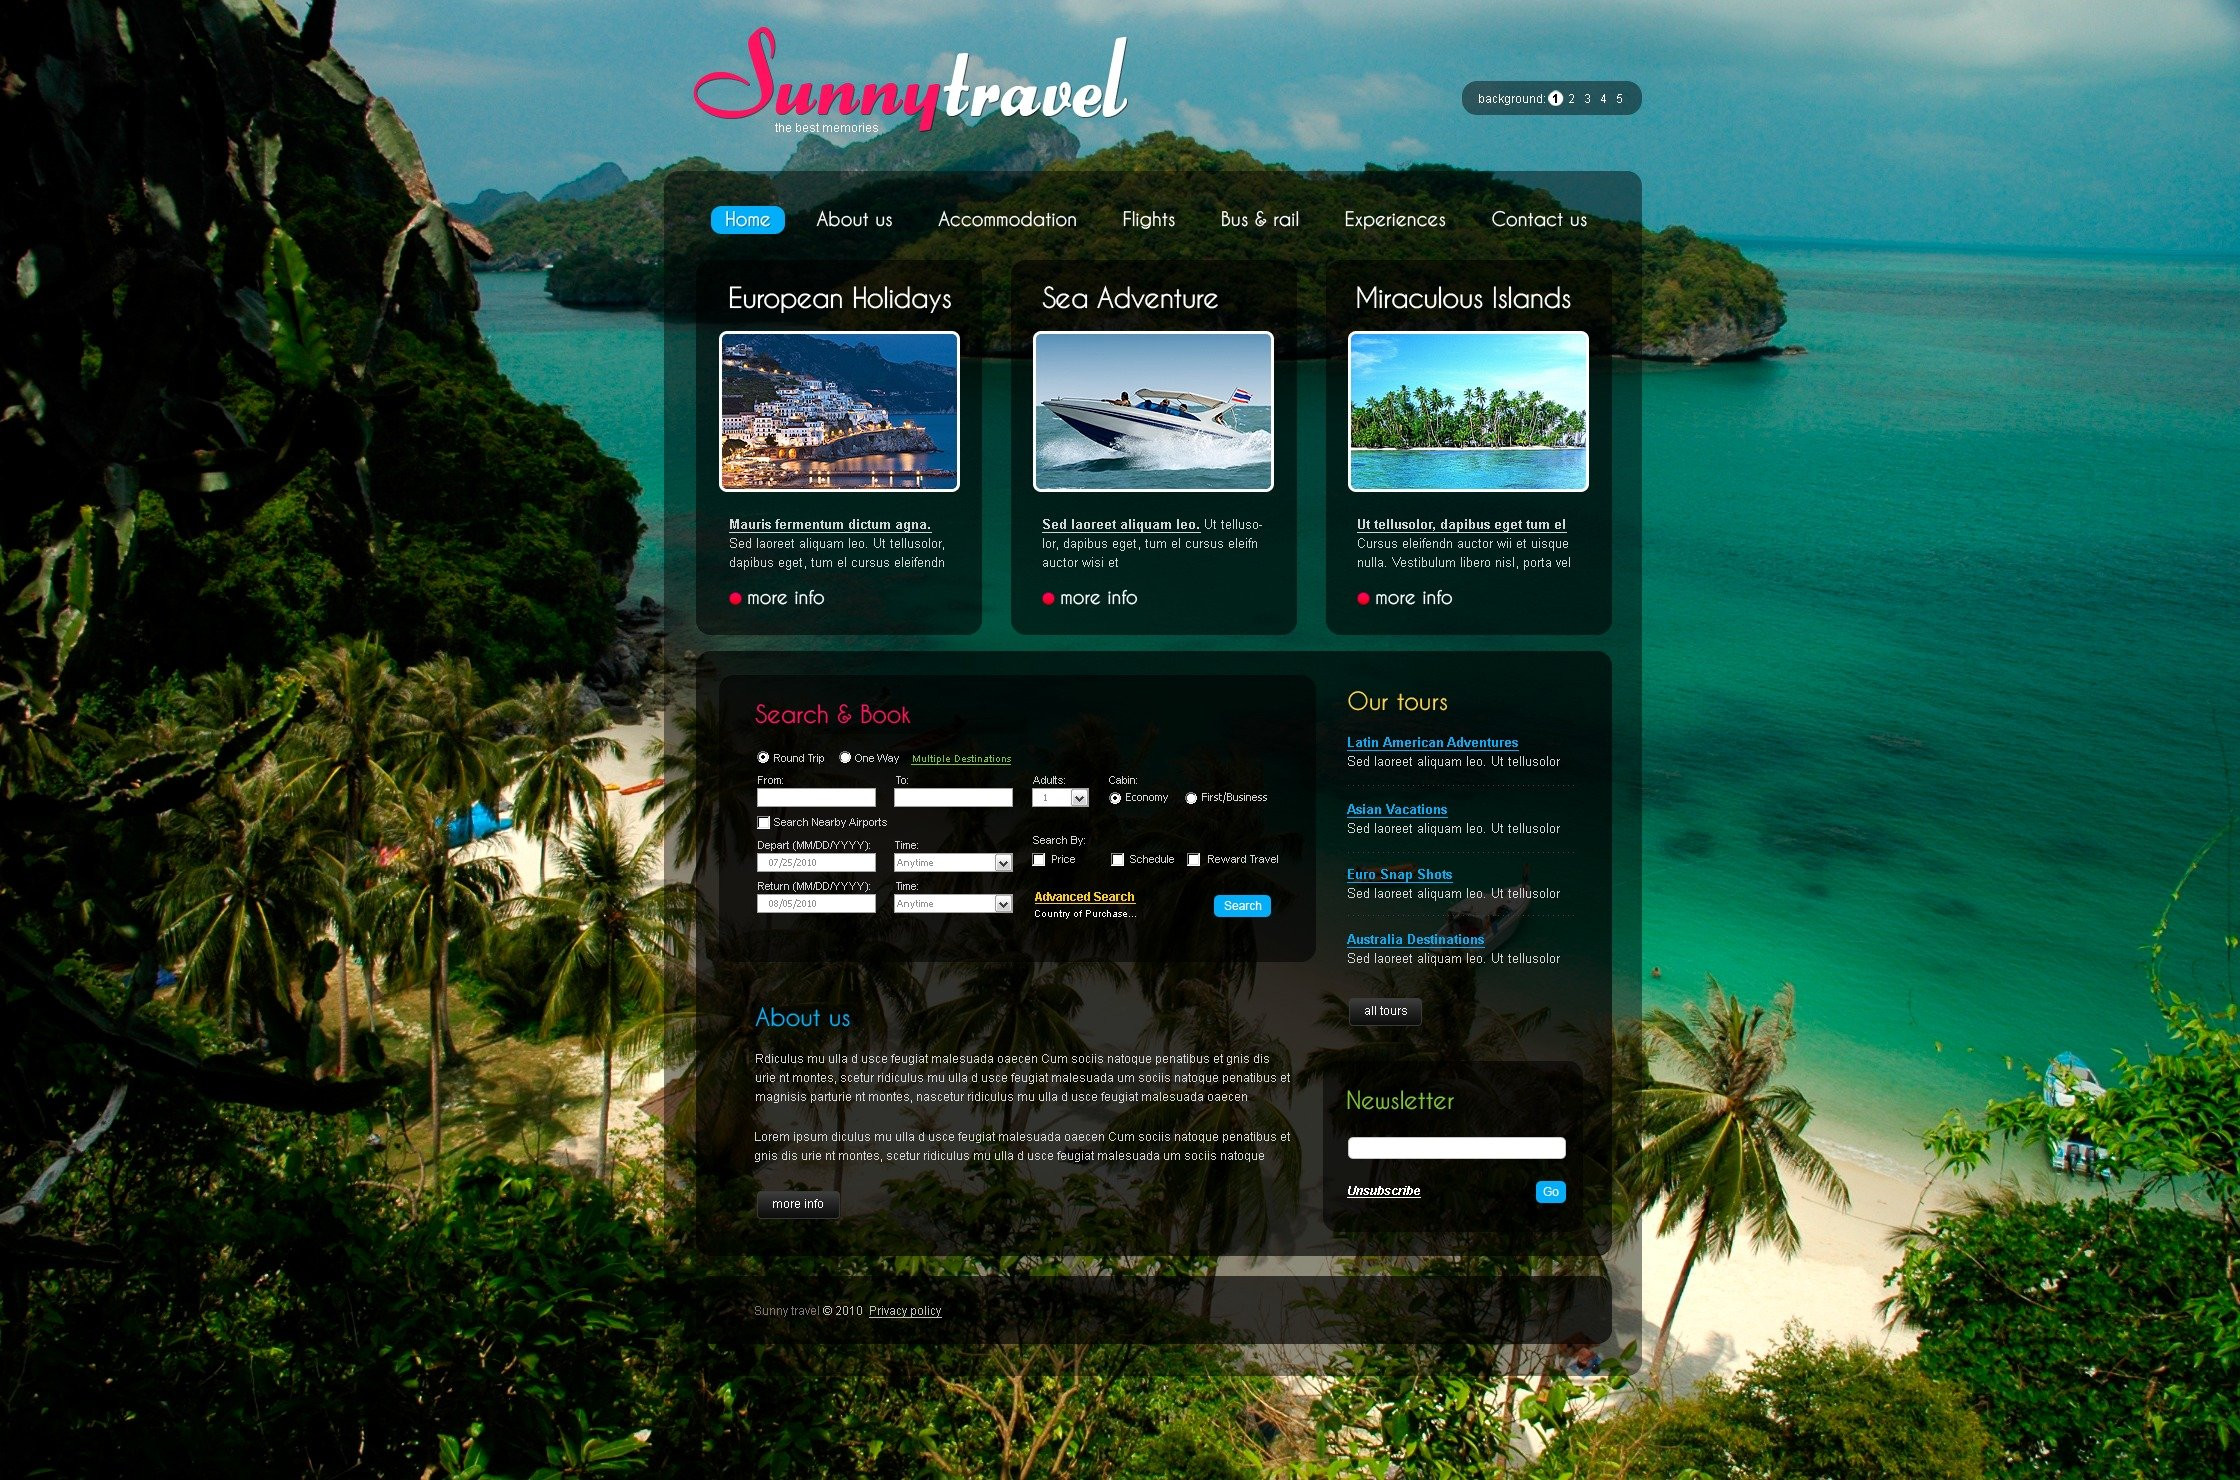 The Sunny Travel Agency PSD Design 54440, one of the best PSD templates of its kind (business, travel, flash 8, wide), also known as sunny travel agency PSD template, compass PSD template, tour country PSD template, resort PSD template, spa PSD template, flight hotel PSD template, car PSD template, rental PSD template, cruise PSD template, sights PSD template, reservation PSD template, location PSD template, authorization PSD template, ticket PSD template, guide PSD template, beach PSD template, sea PSD template, relaxation PSD template, recreation PSD template, impression PSD template, air PSD template, liner PSD template, traveling PSD template, apartment PSD template, vacation PSD template, rest PSD template, comfort PSD template, destination PSD template, expl and related with sunny travel agency, compass, tour country, resort, spa, flight hotel, car, rental, cruise, sights, reservation, location, authorization, ticket, guide, beach, sea, relaxation, recreation, impression, air, liner, traveling, apartment, vacation, rest, comfort, destination, expl, etc.